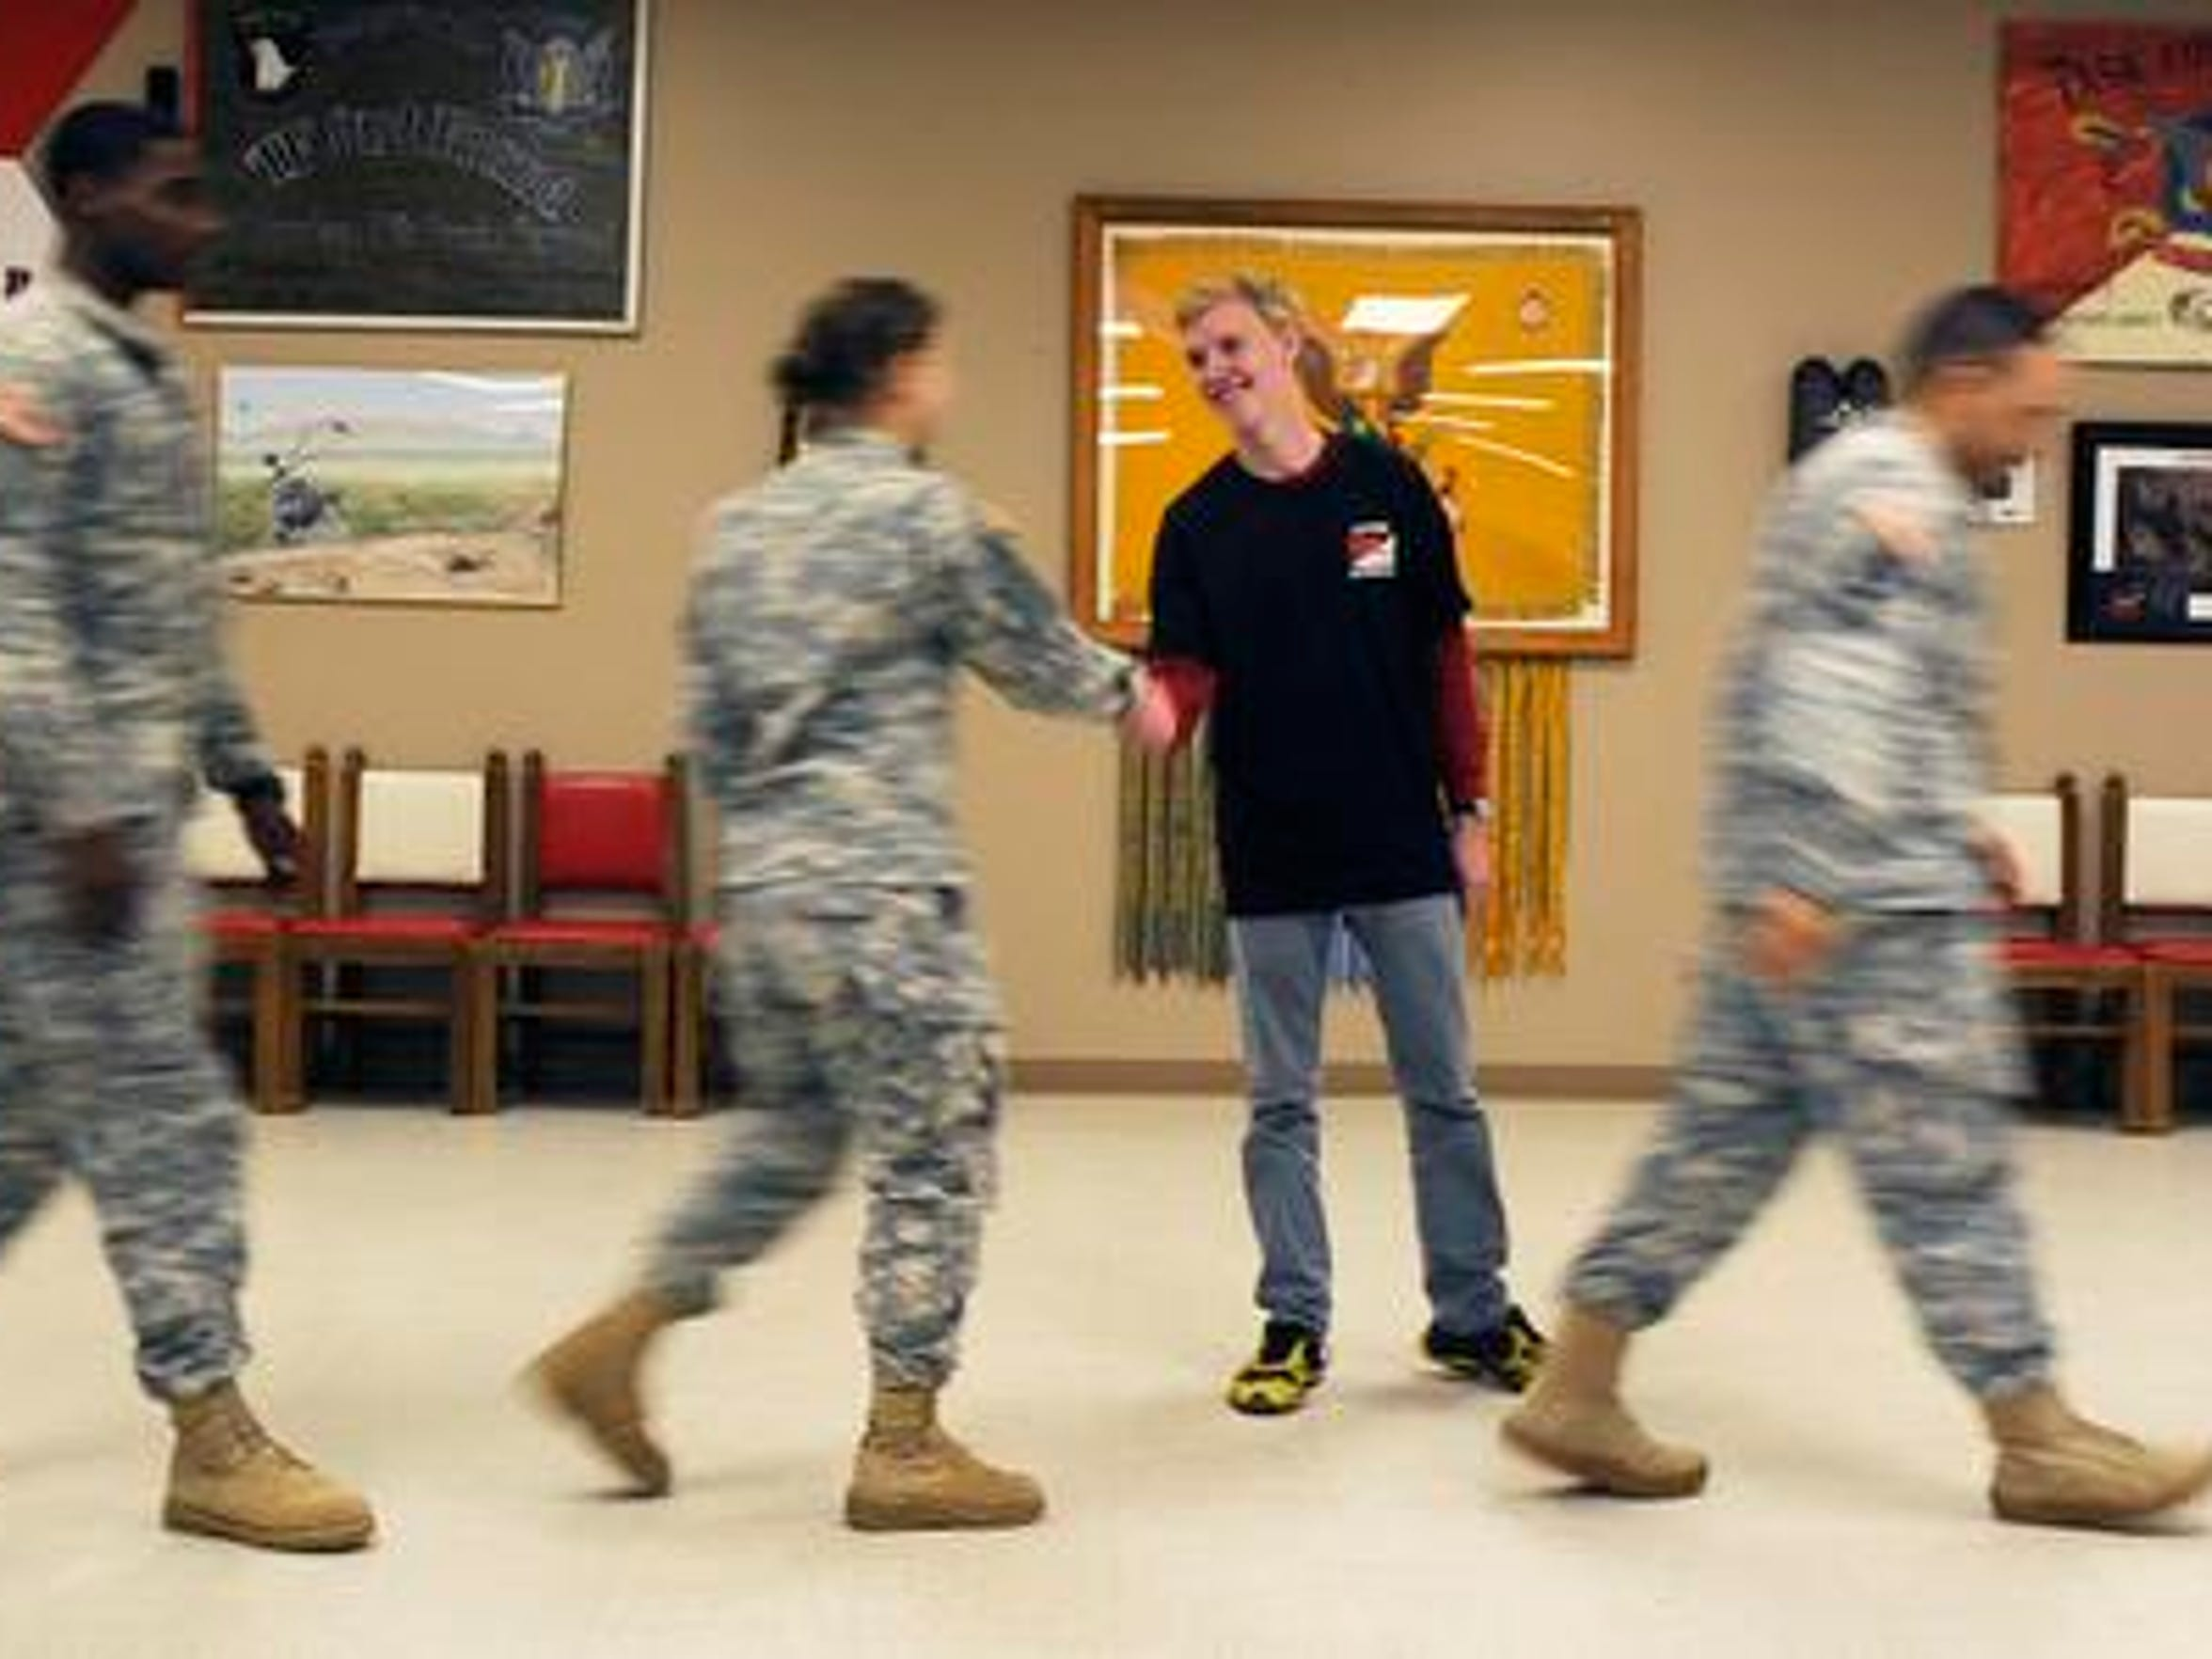 Jack Zimmerman, an 18-year-old with cystic fibrosis, received his Make a Wish request with the help of the 2nd Squadron, 17th Cavalry Regiment, 101st Combat Aviation Brigade at Fort Campbell on Dec. 13, 2014.